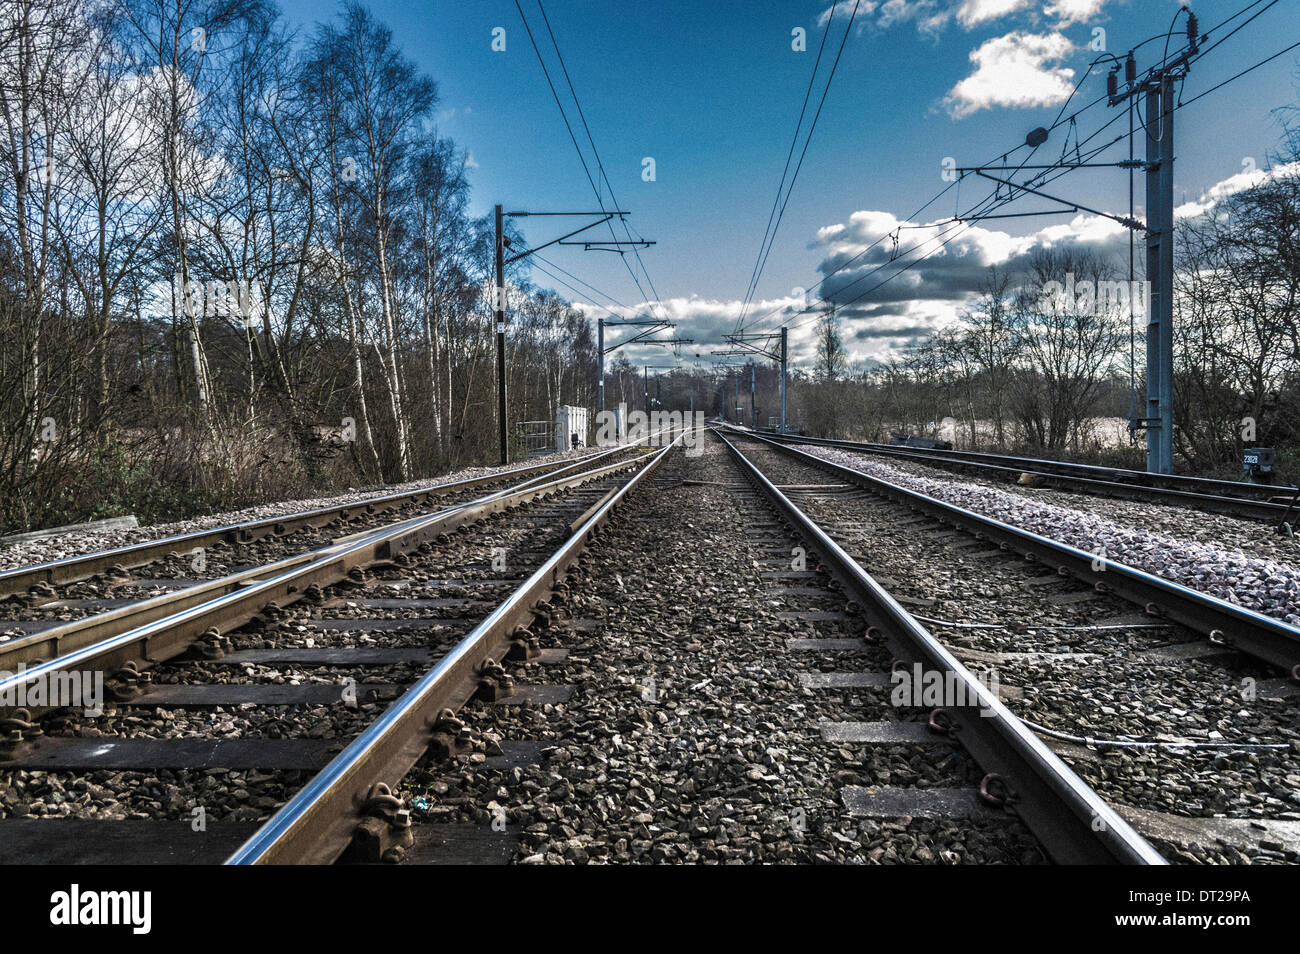 railway tracks disappearing into distance - Stock Image